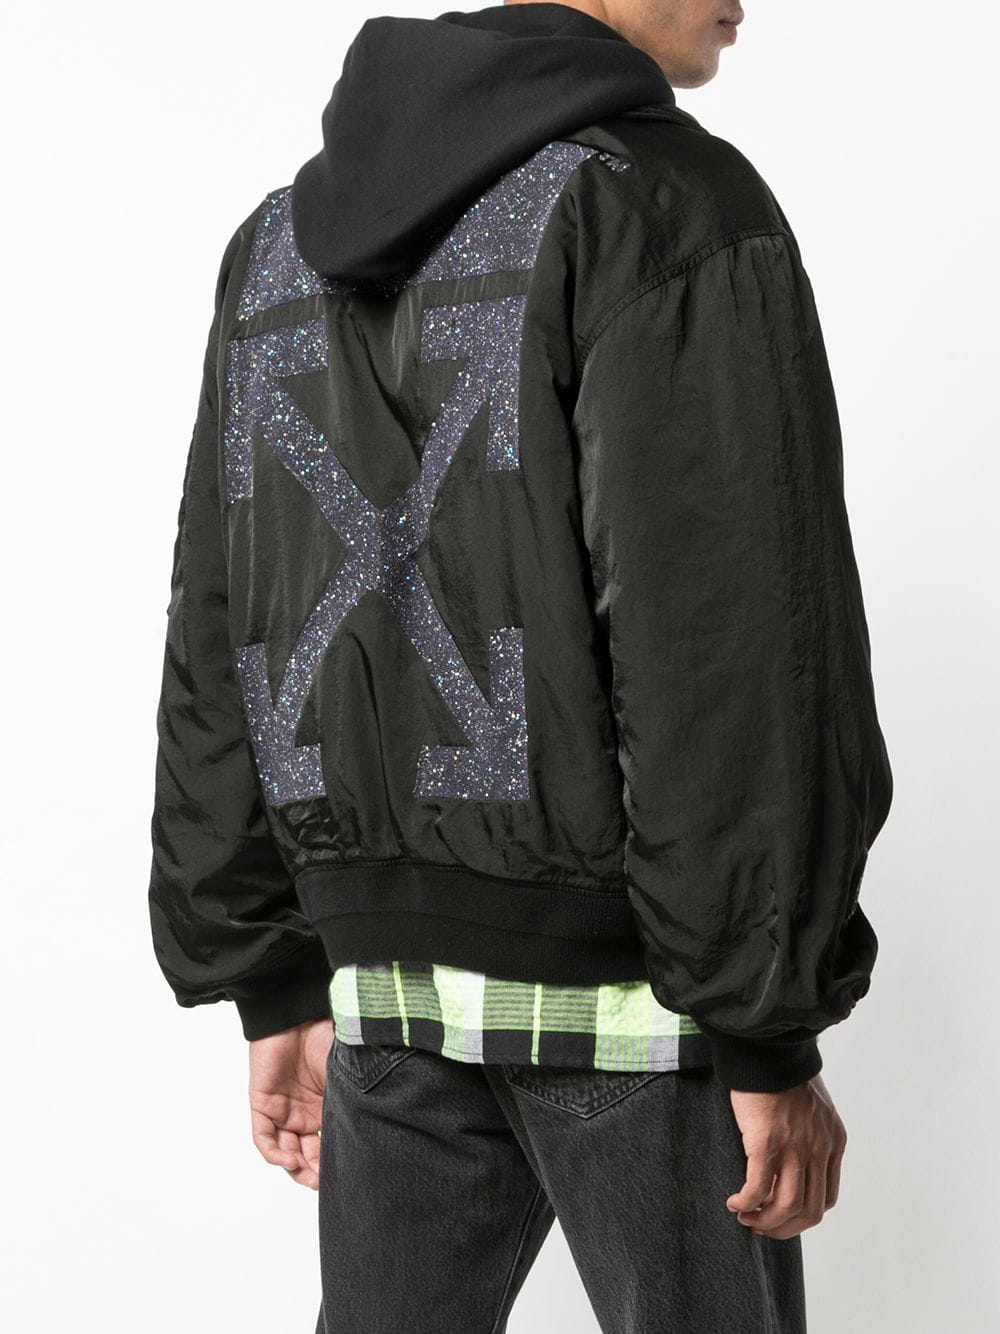 Off White Hooded Bomber Jacket Farfetch Hooded Bomber Jacket Bomber Jacket Jackets [ 1334 x 1000 Pixel ]